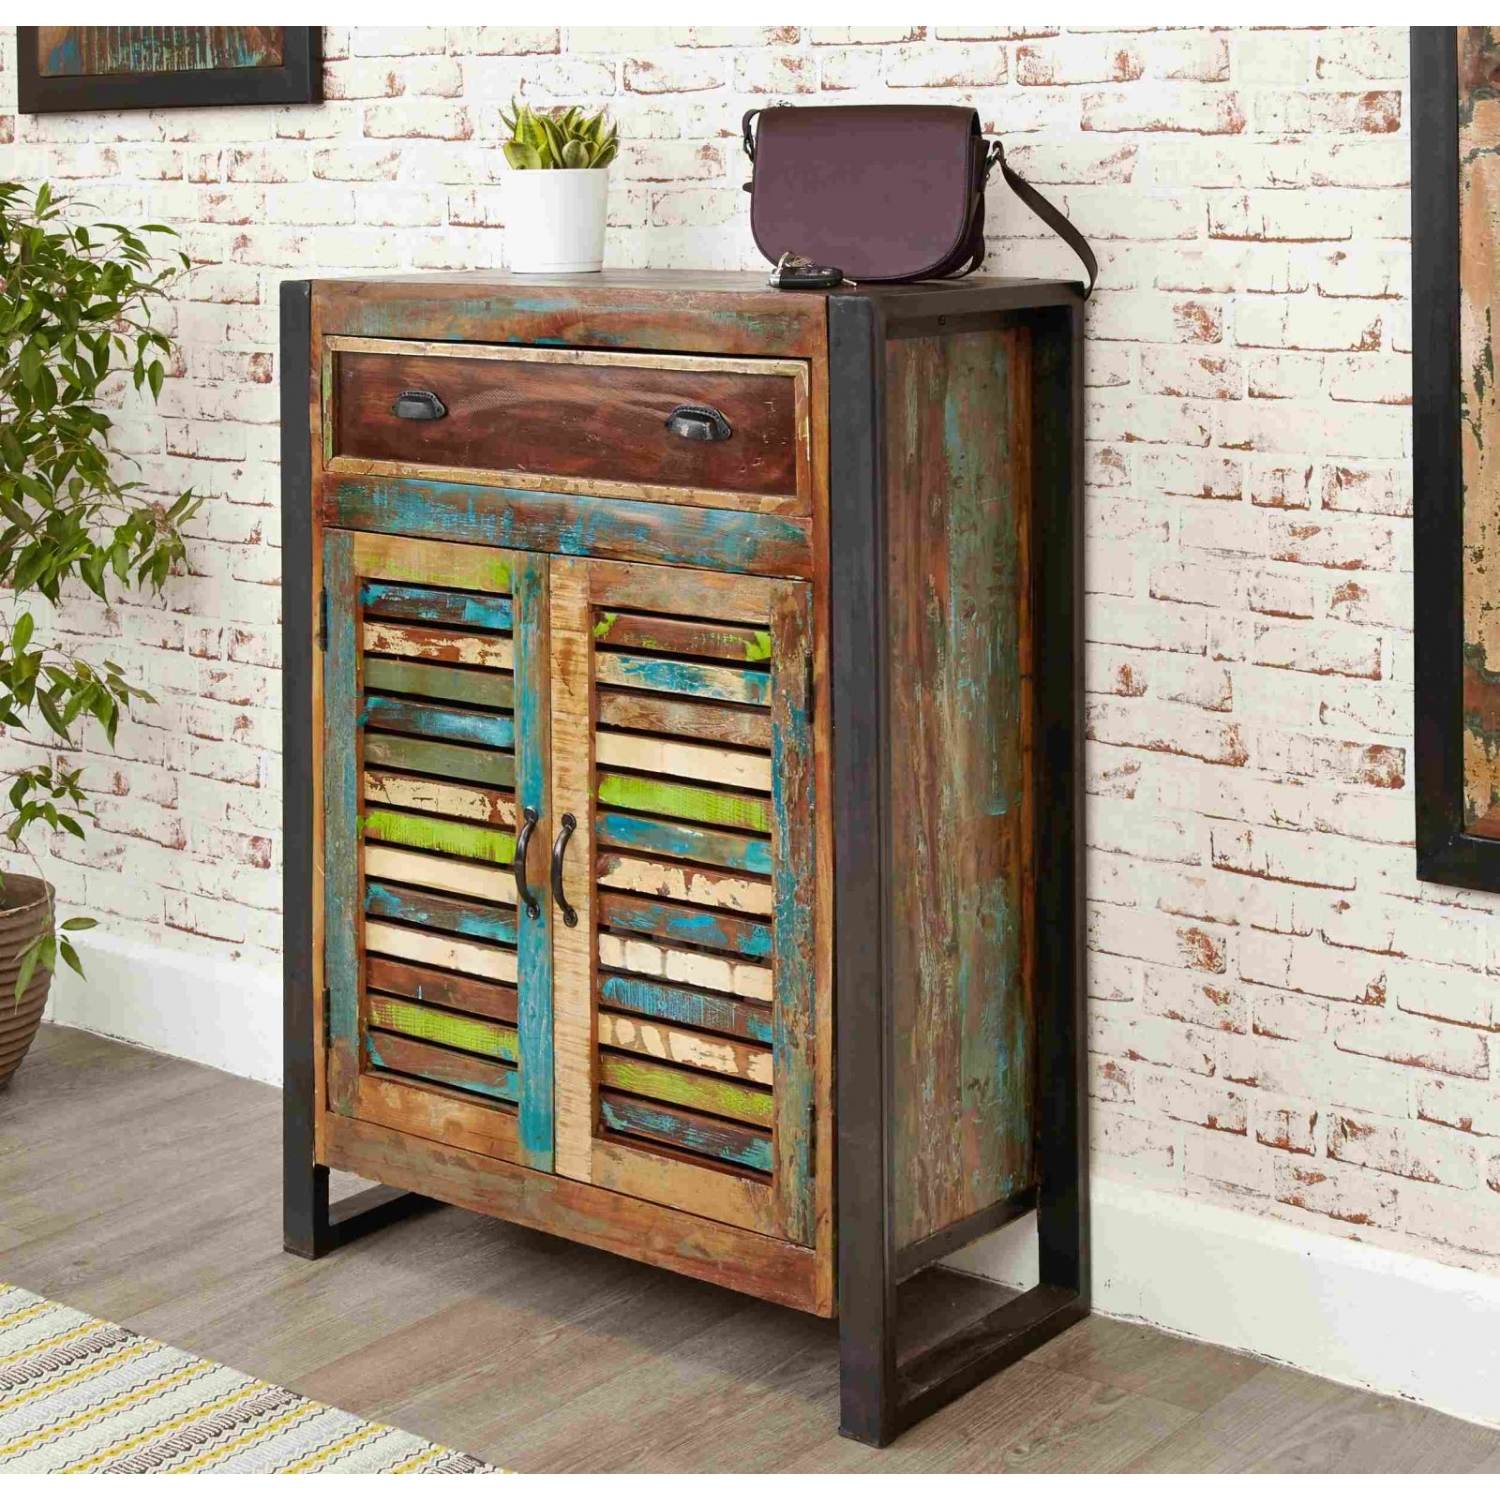 Details about agra reclaimed wood furniture shoe storage cabinet cupboard rack